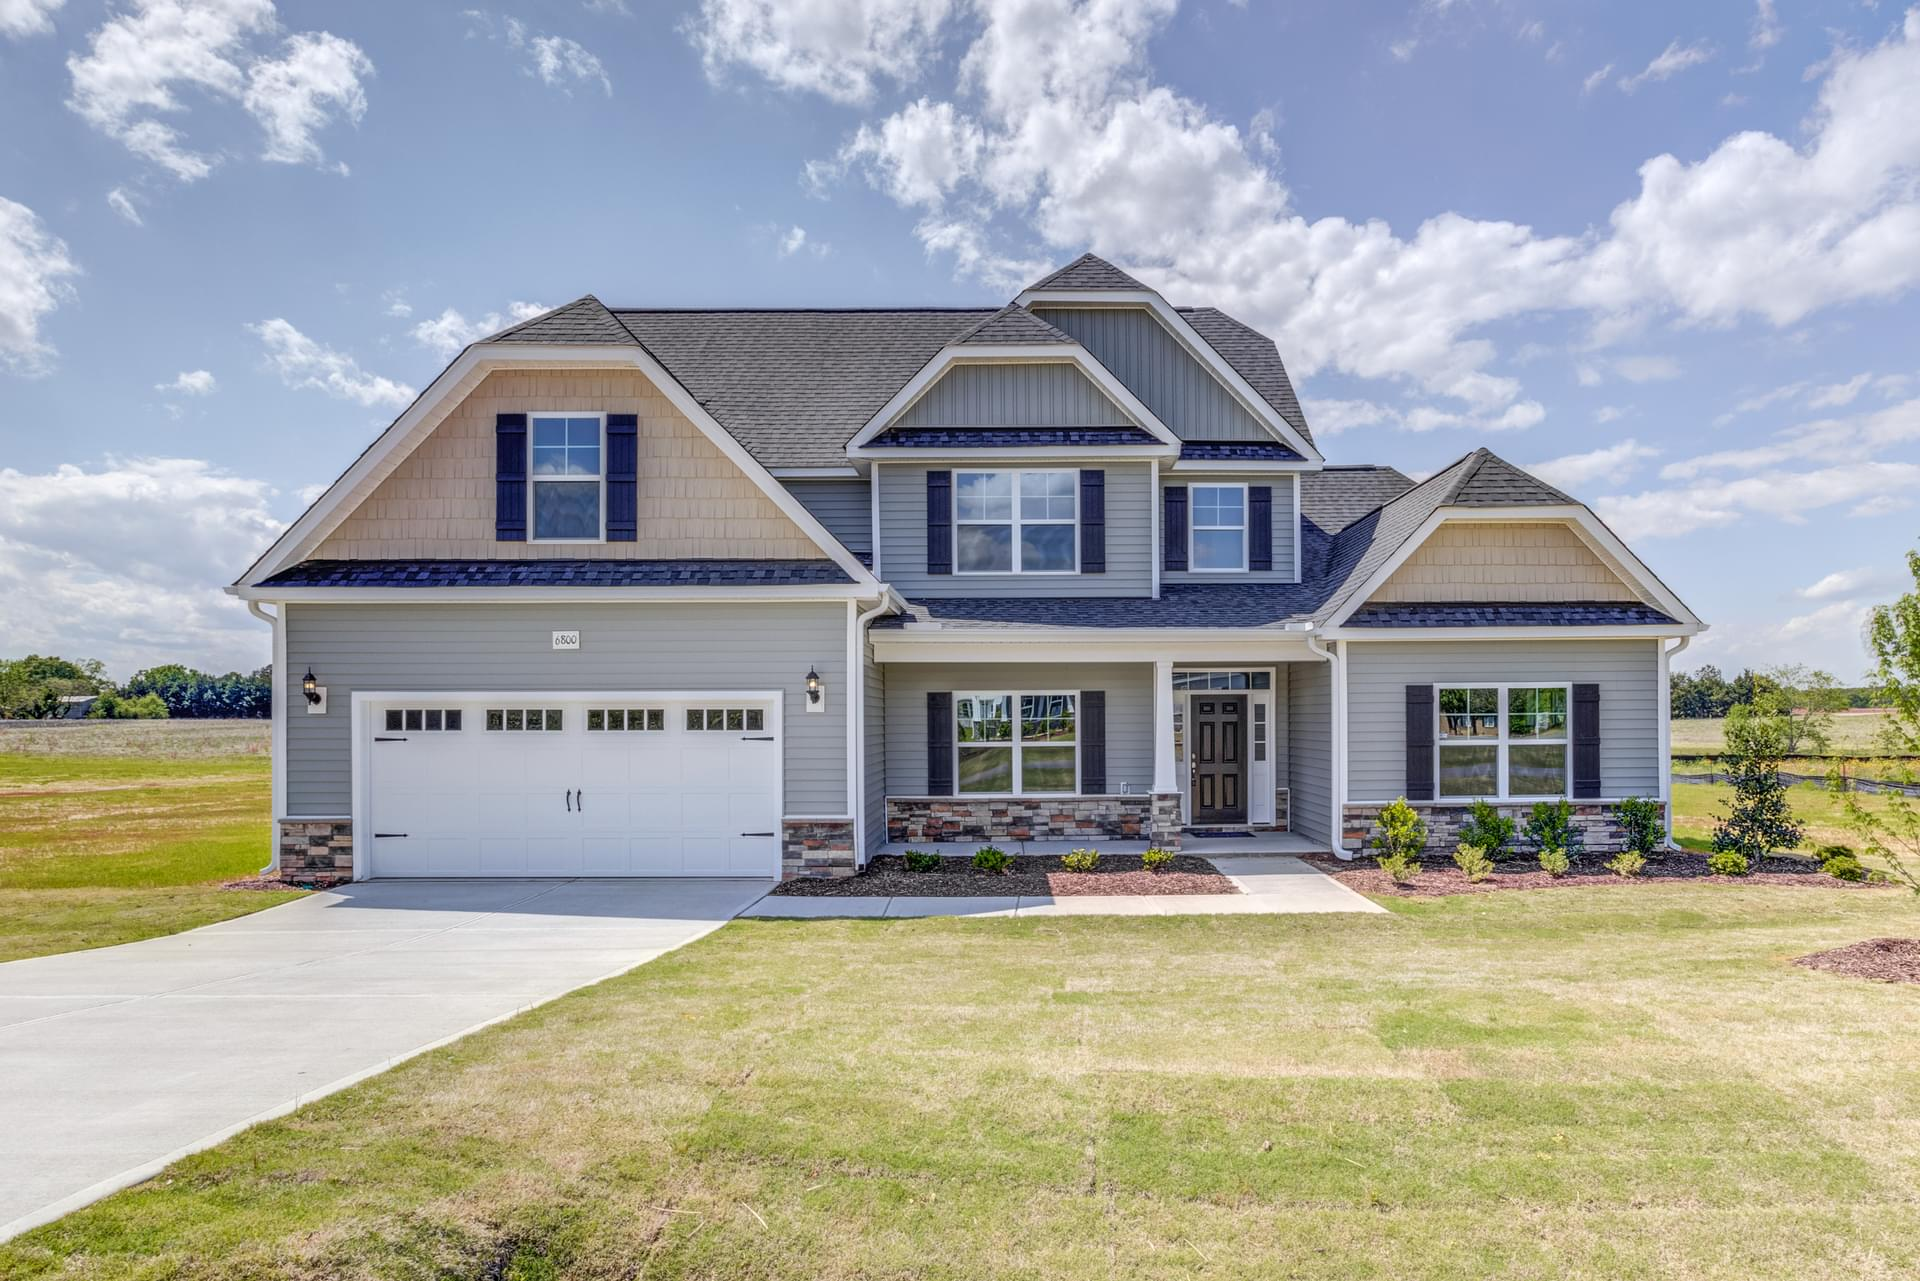 New Homes In Raleigh Nc Arlington Manor From Caviness Cates Communities